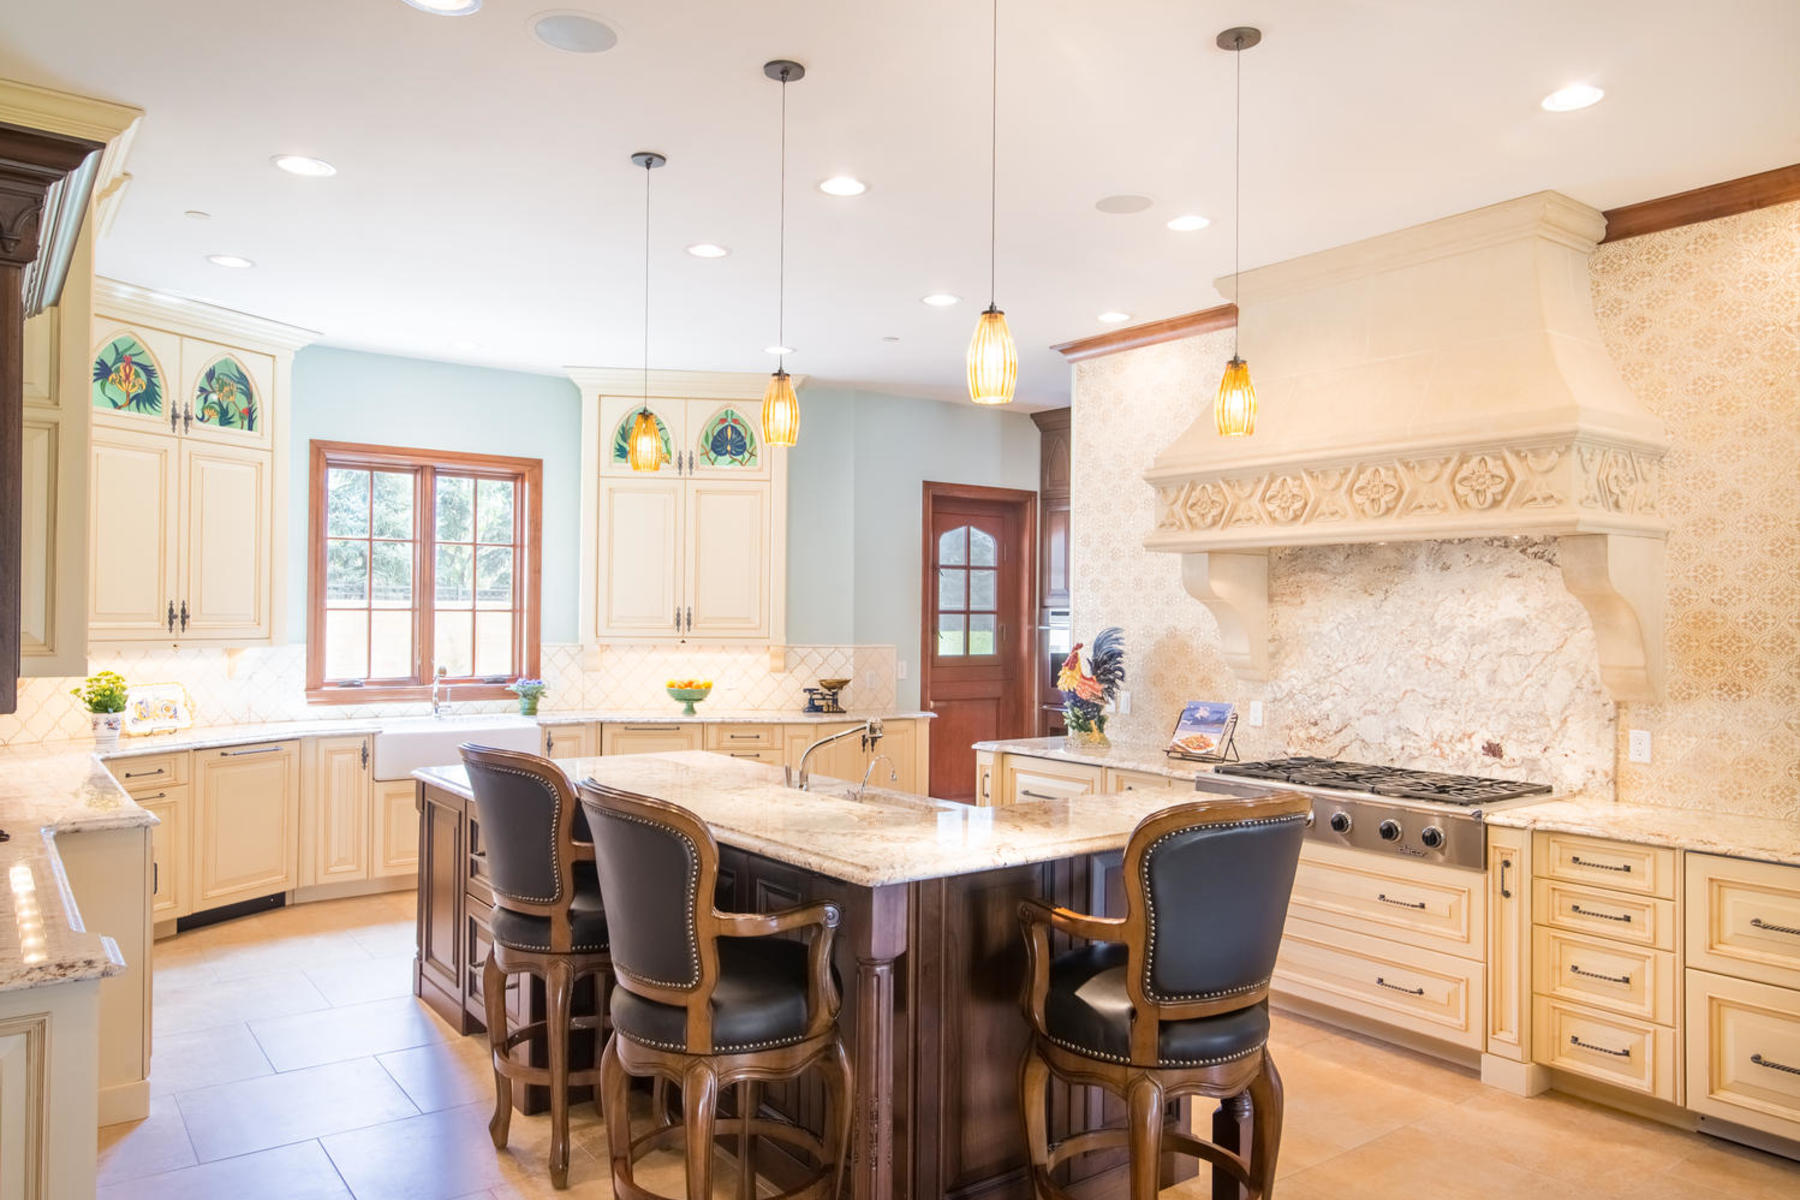 Additional photo for property listing at This English manor home is nestled on 2.5 serene acres in Cherry Hills Village. 1 Tenaya Ln Cherry Hills Village, Colorado 80113 United States